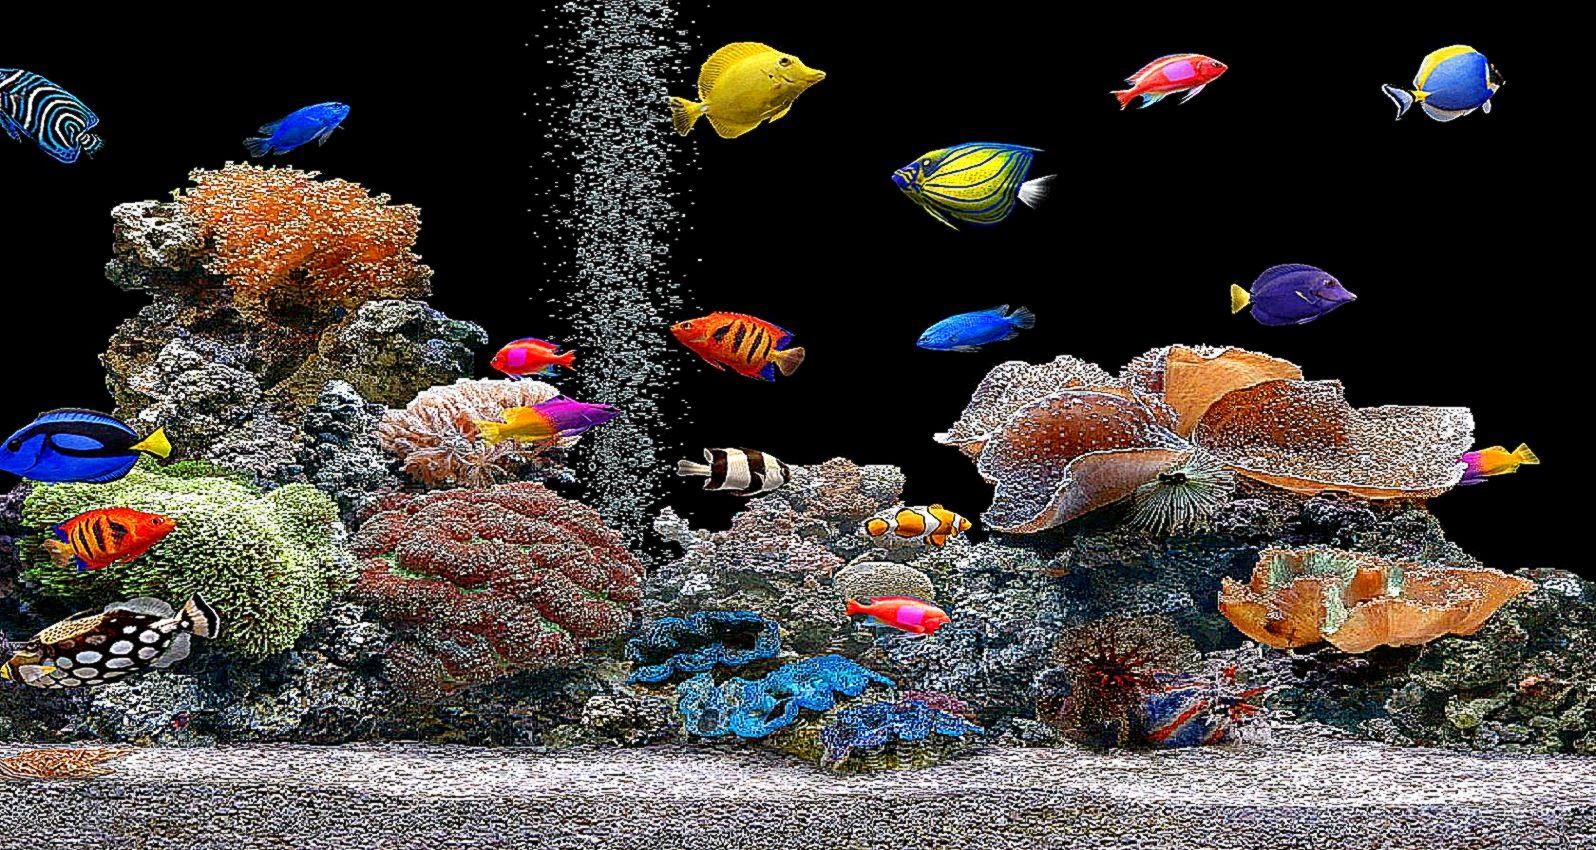 3d aquarium wallpaper wallpapersafari for Desktop fish tank